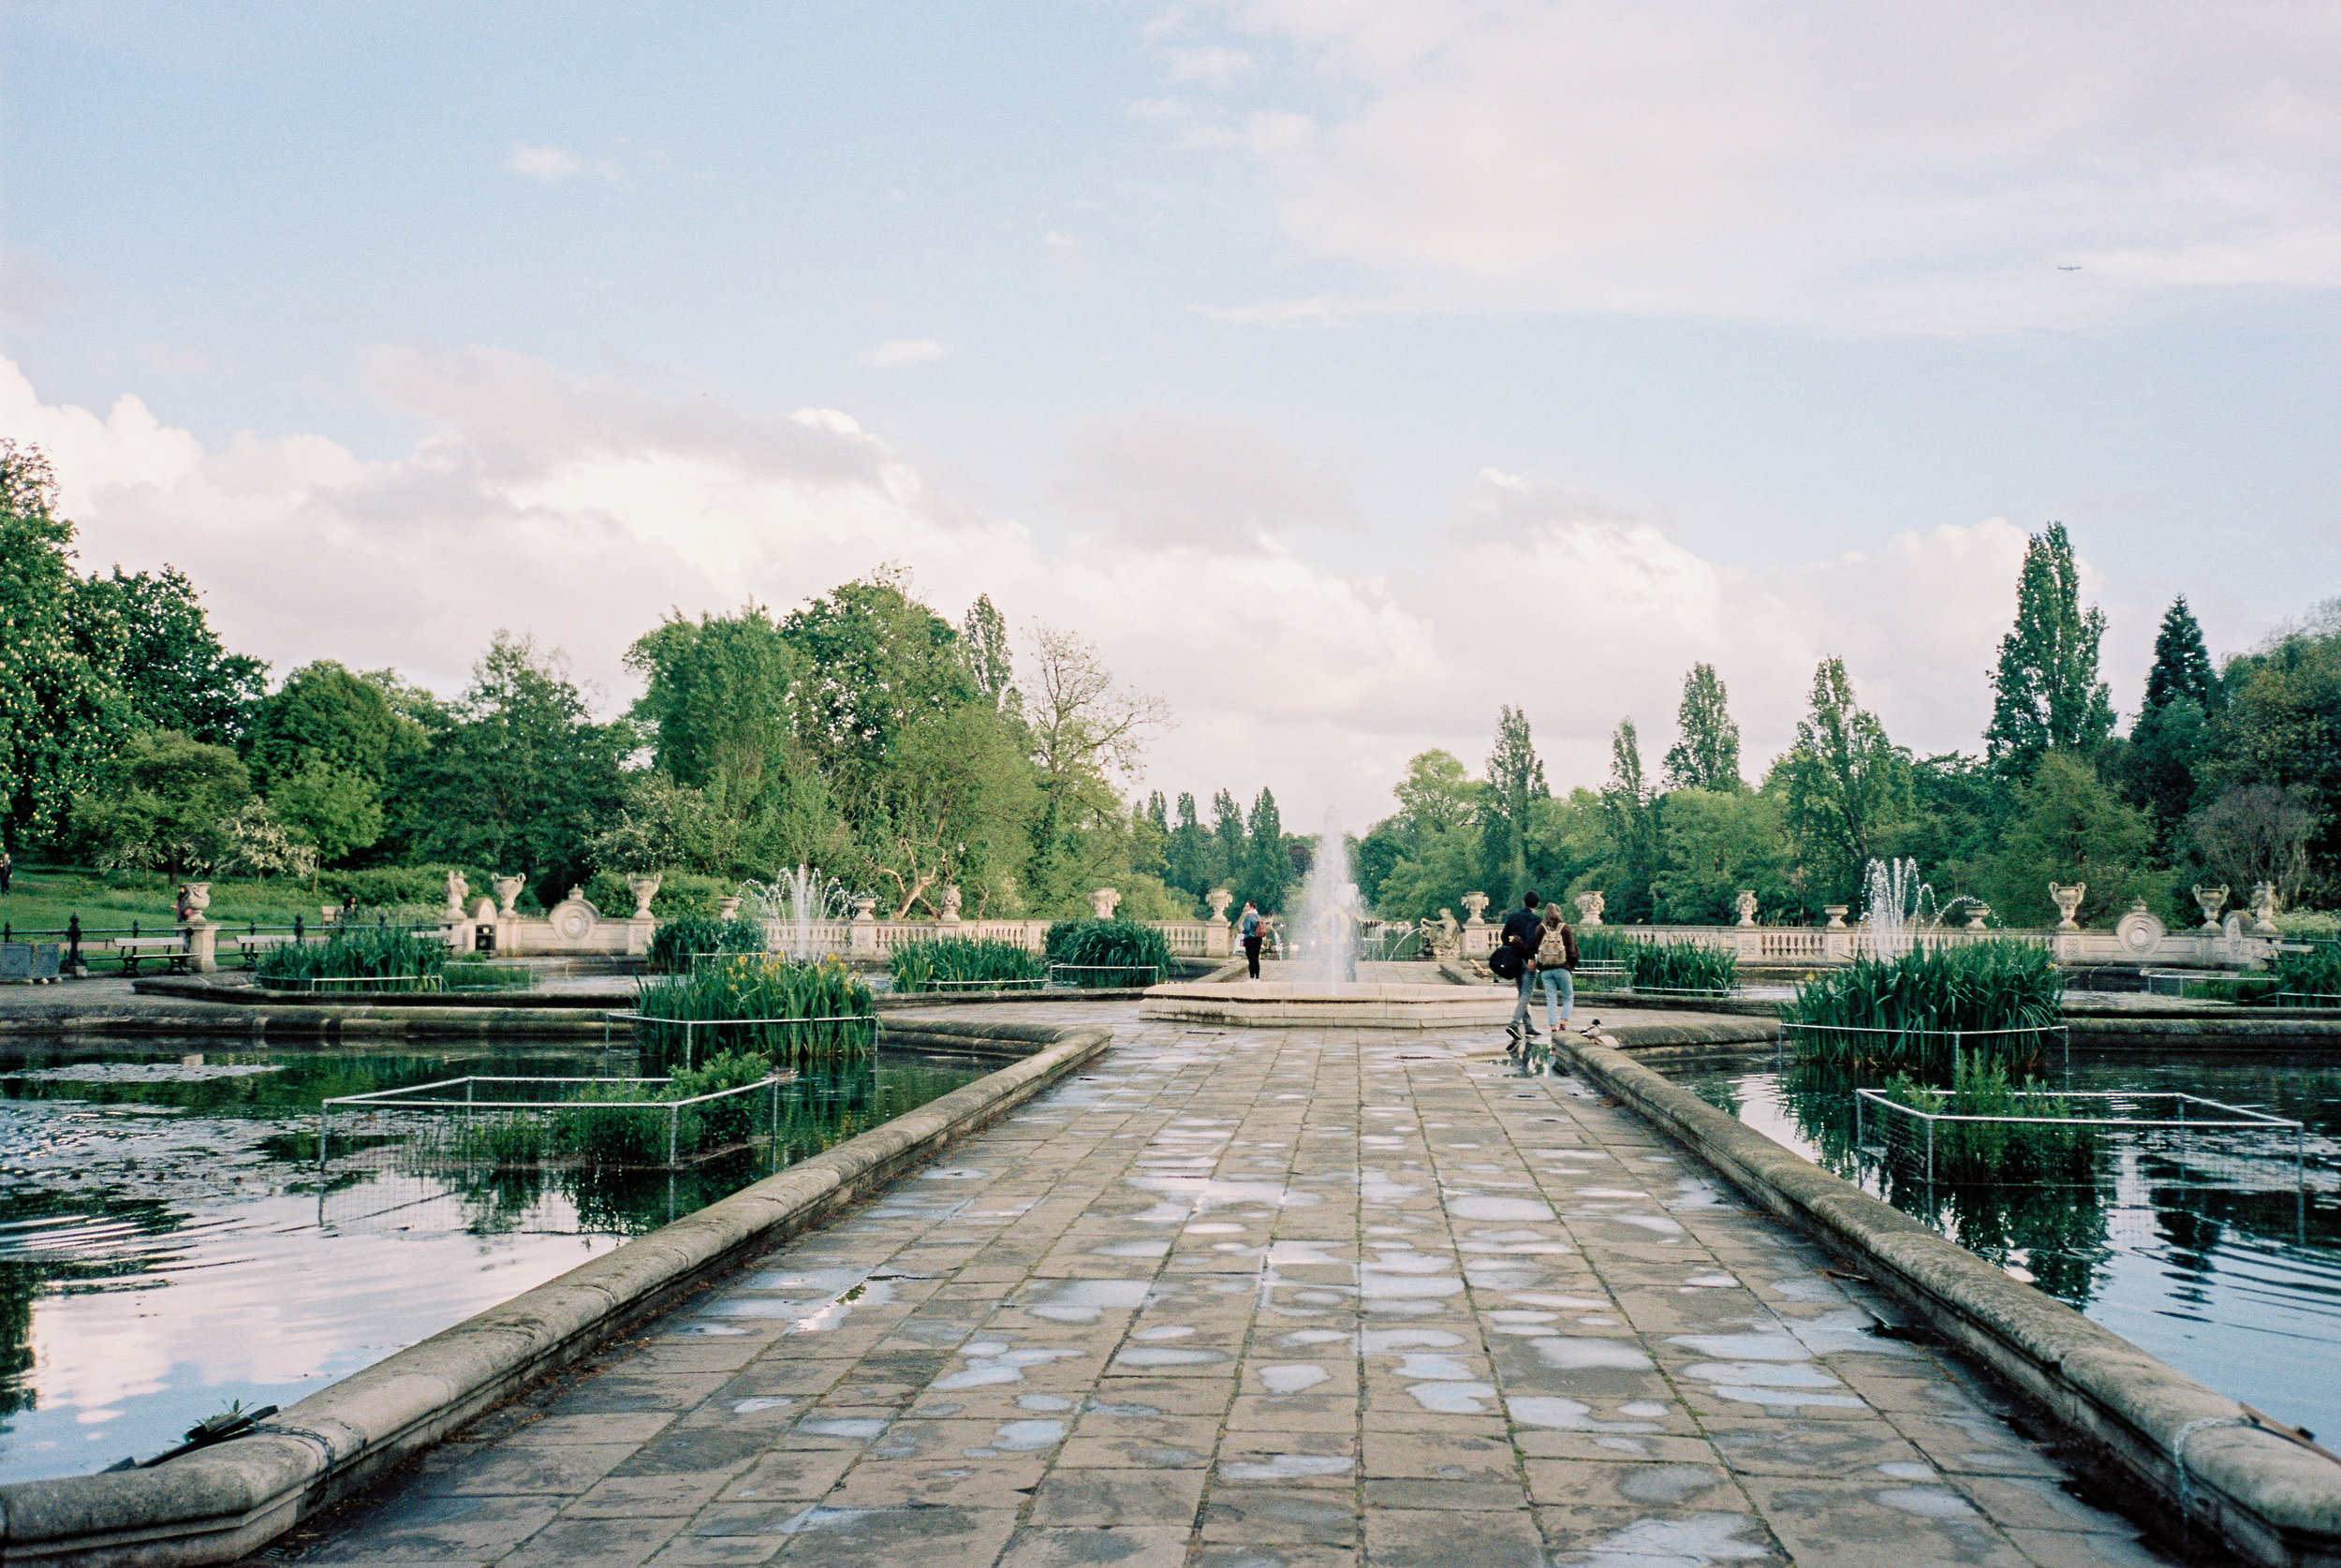 Olympus Stylus Epic + Portra 160. Spot the small plane in the upper-right corner?